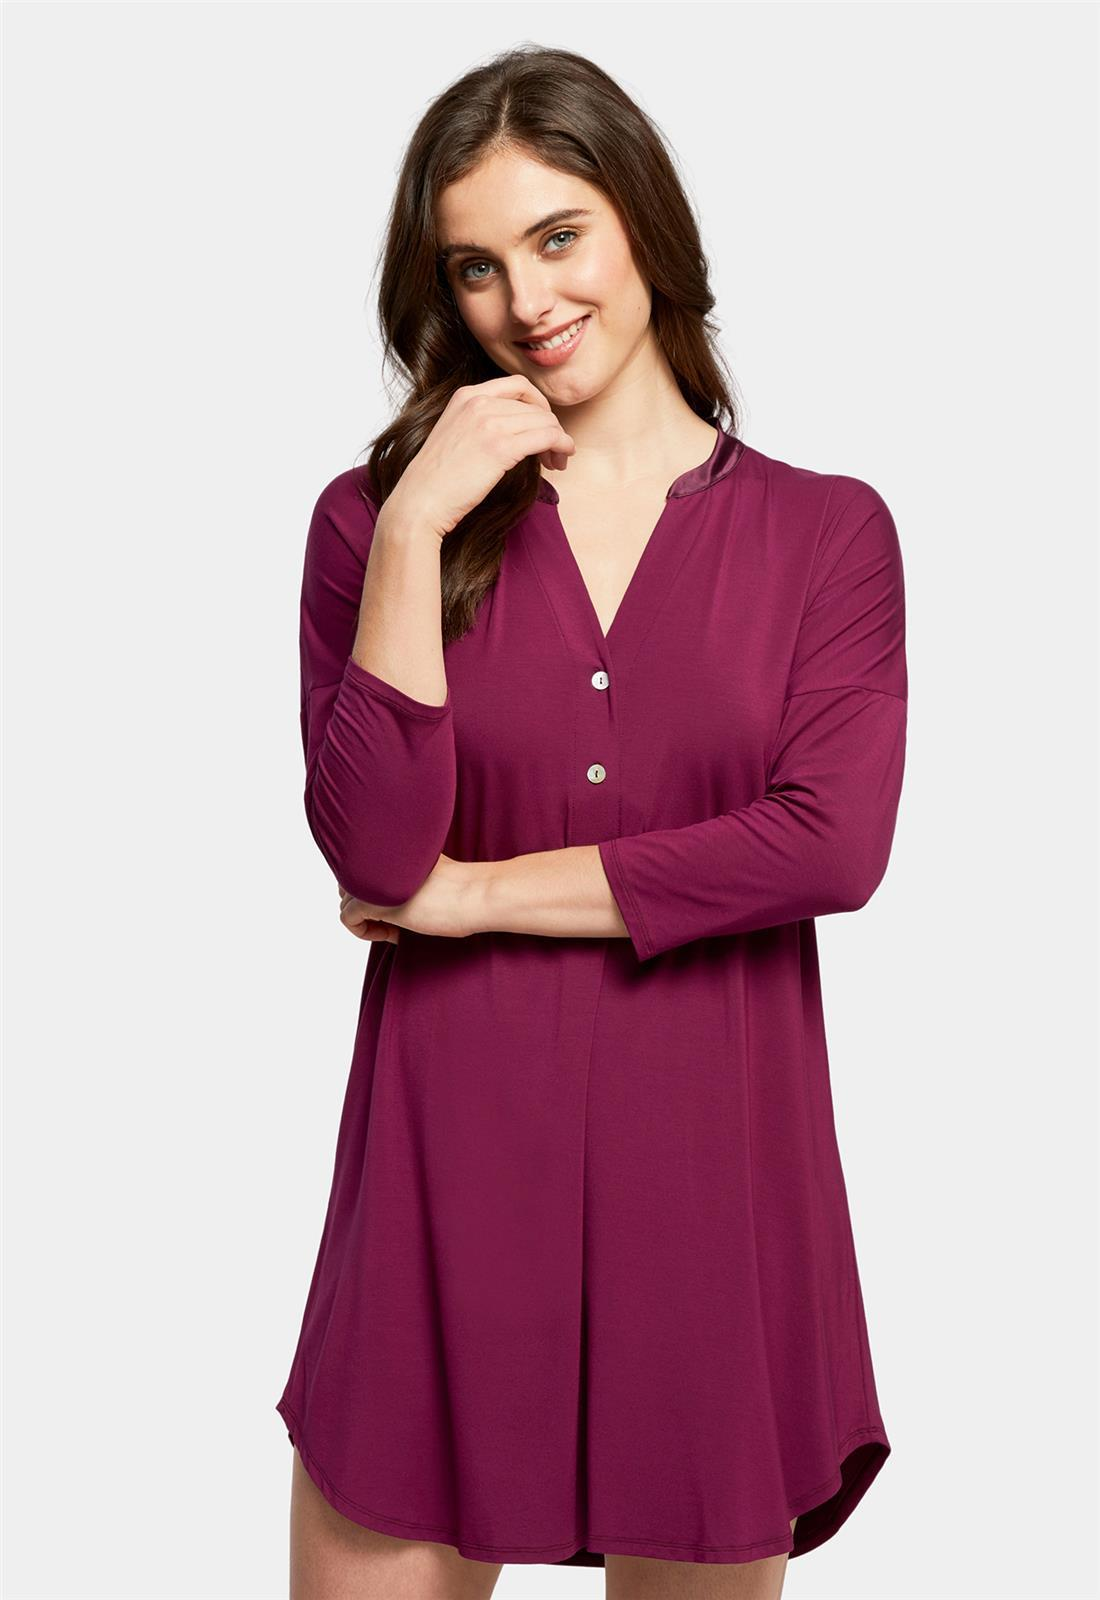 Dolman 3/4 Sleeve Nightshirt Royal Plum